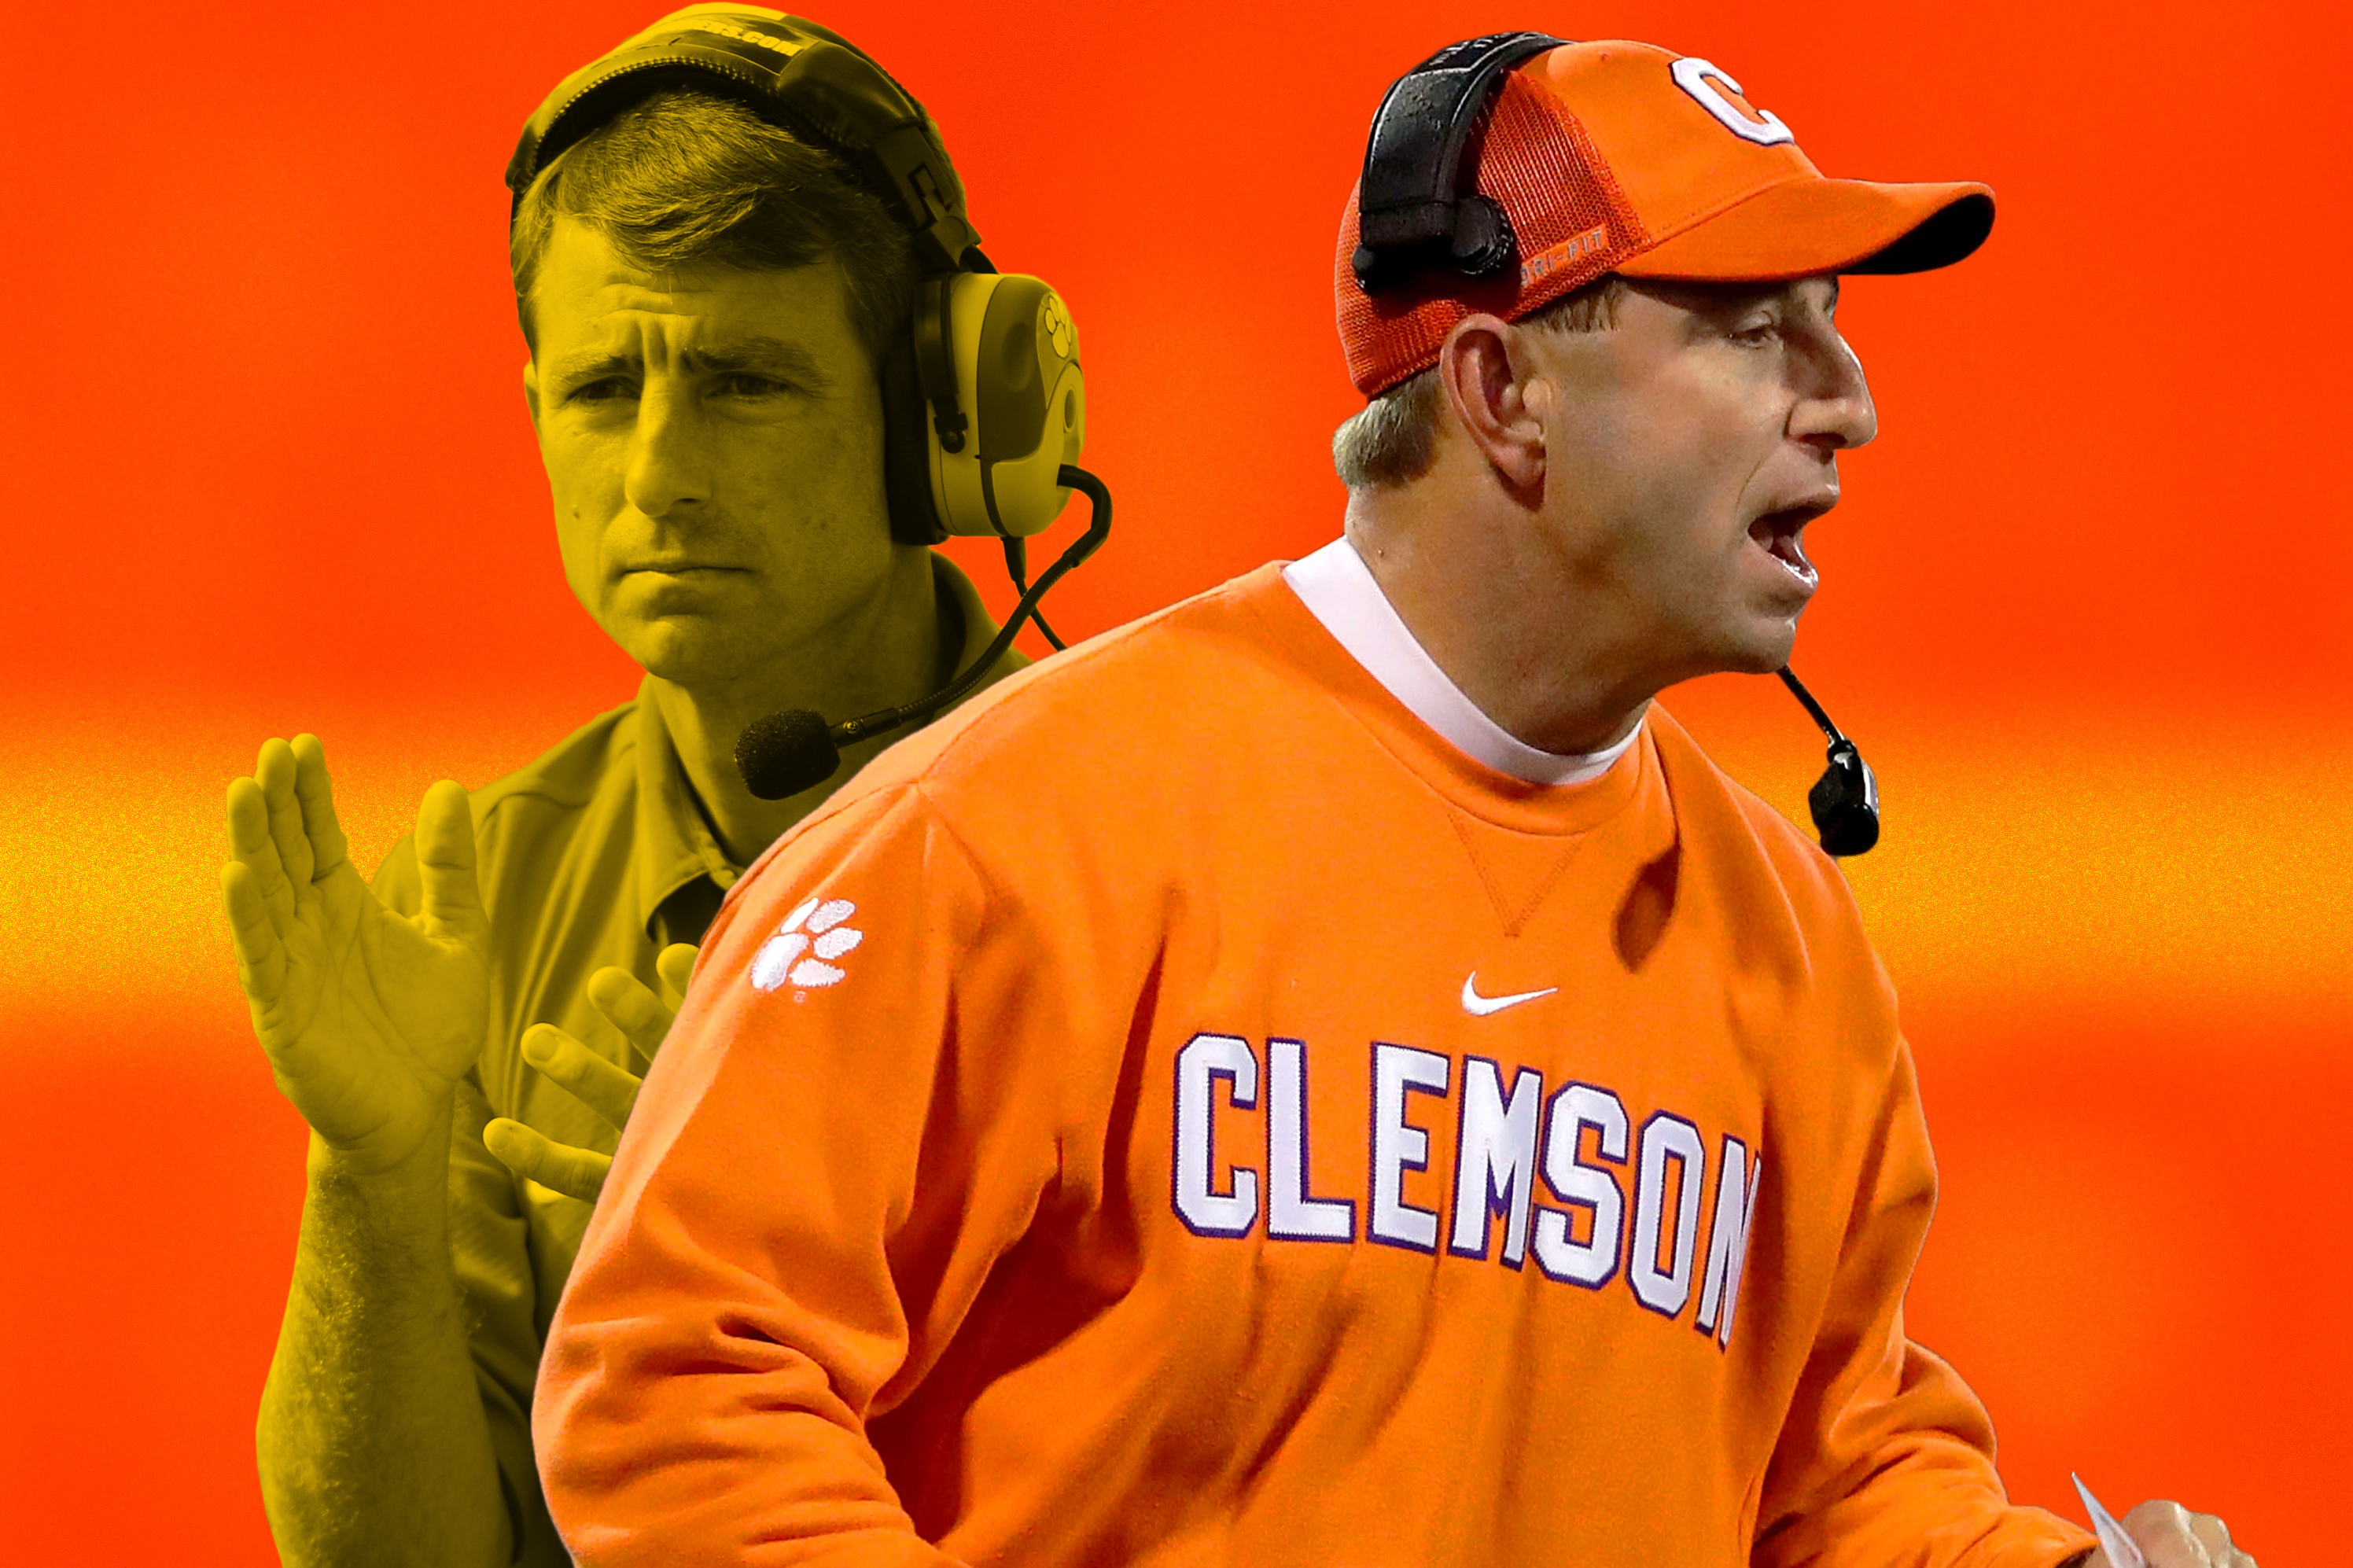 fbfad26514ea Dabo Swinney's Rise at Clemson Full of Improbable, Entertaining Twists and  Turns